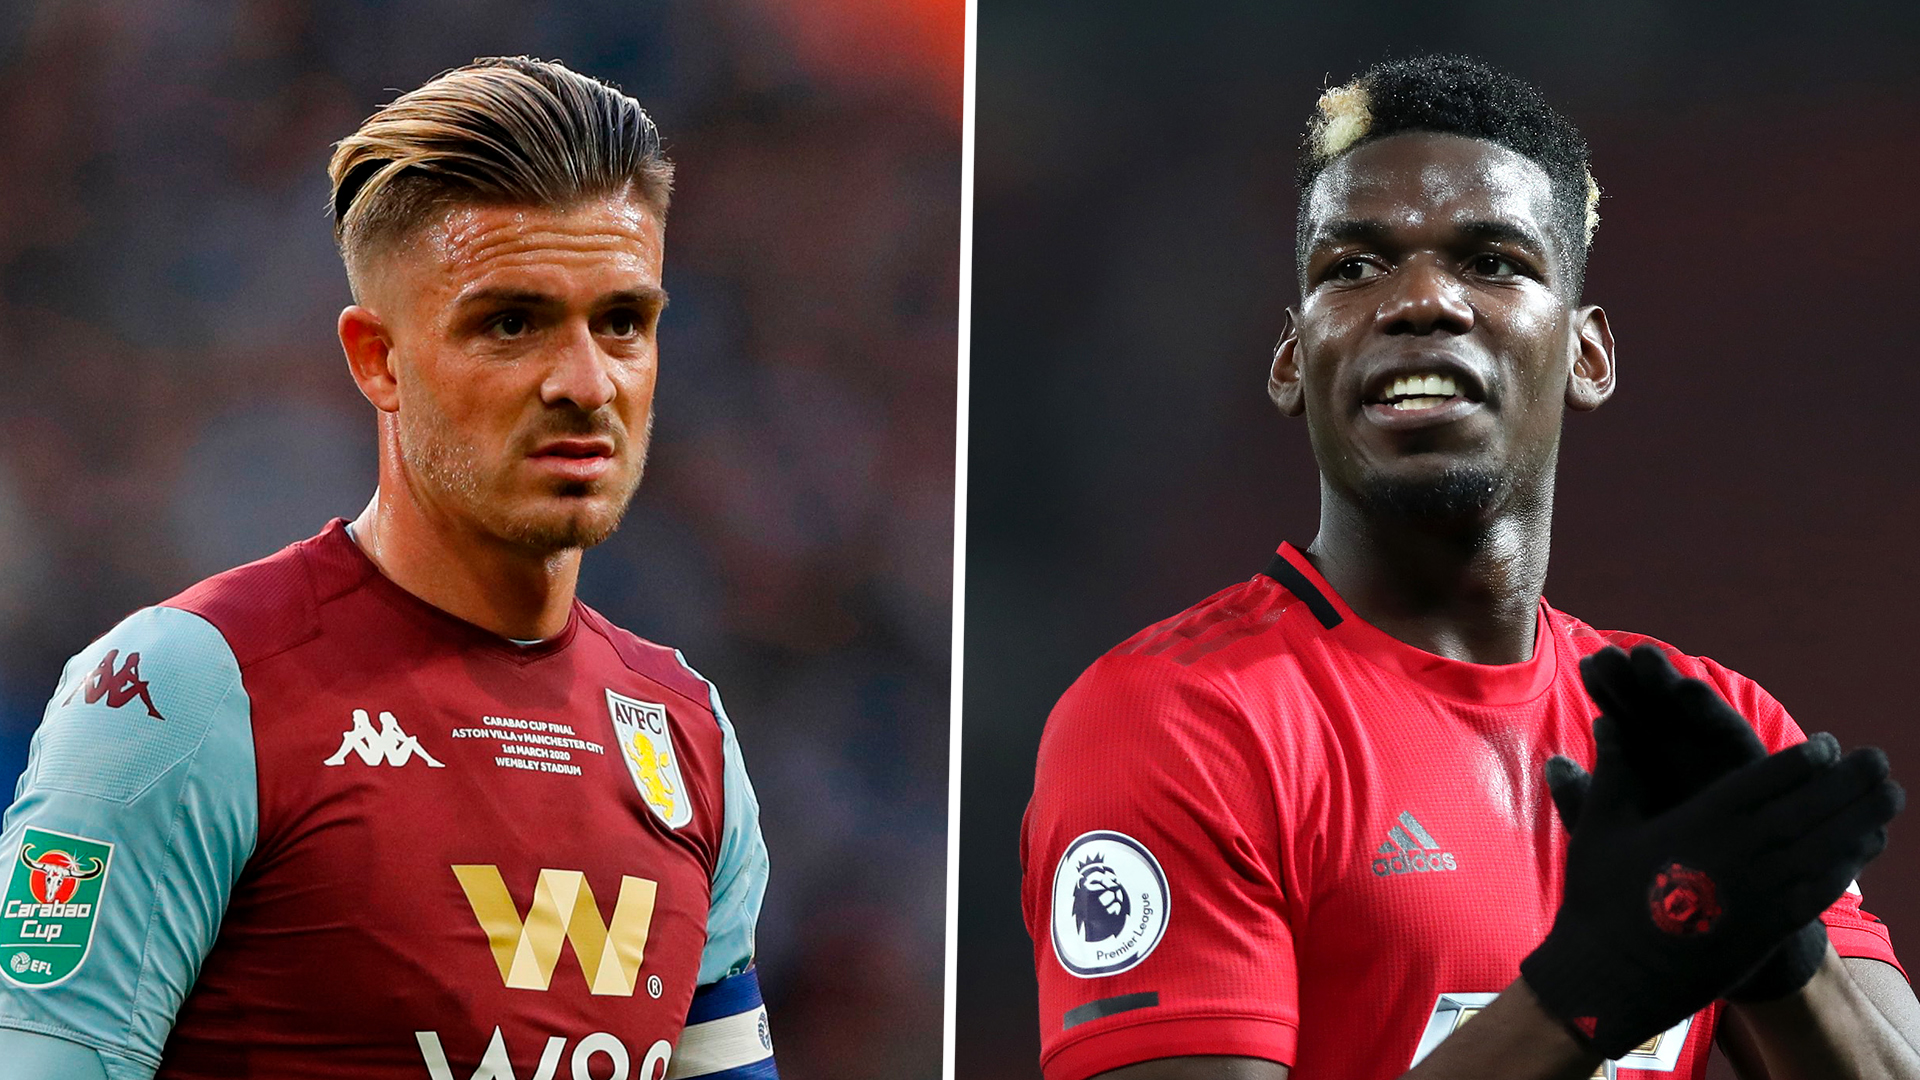 'It's a no-brainer!' - Man Utd urged to sell Pogba and bring in Grealish for £70m